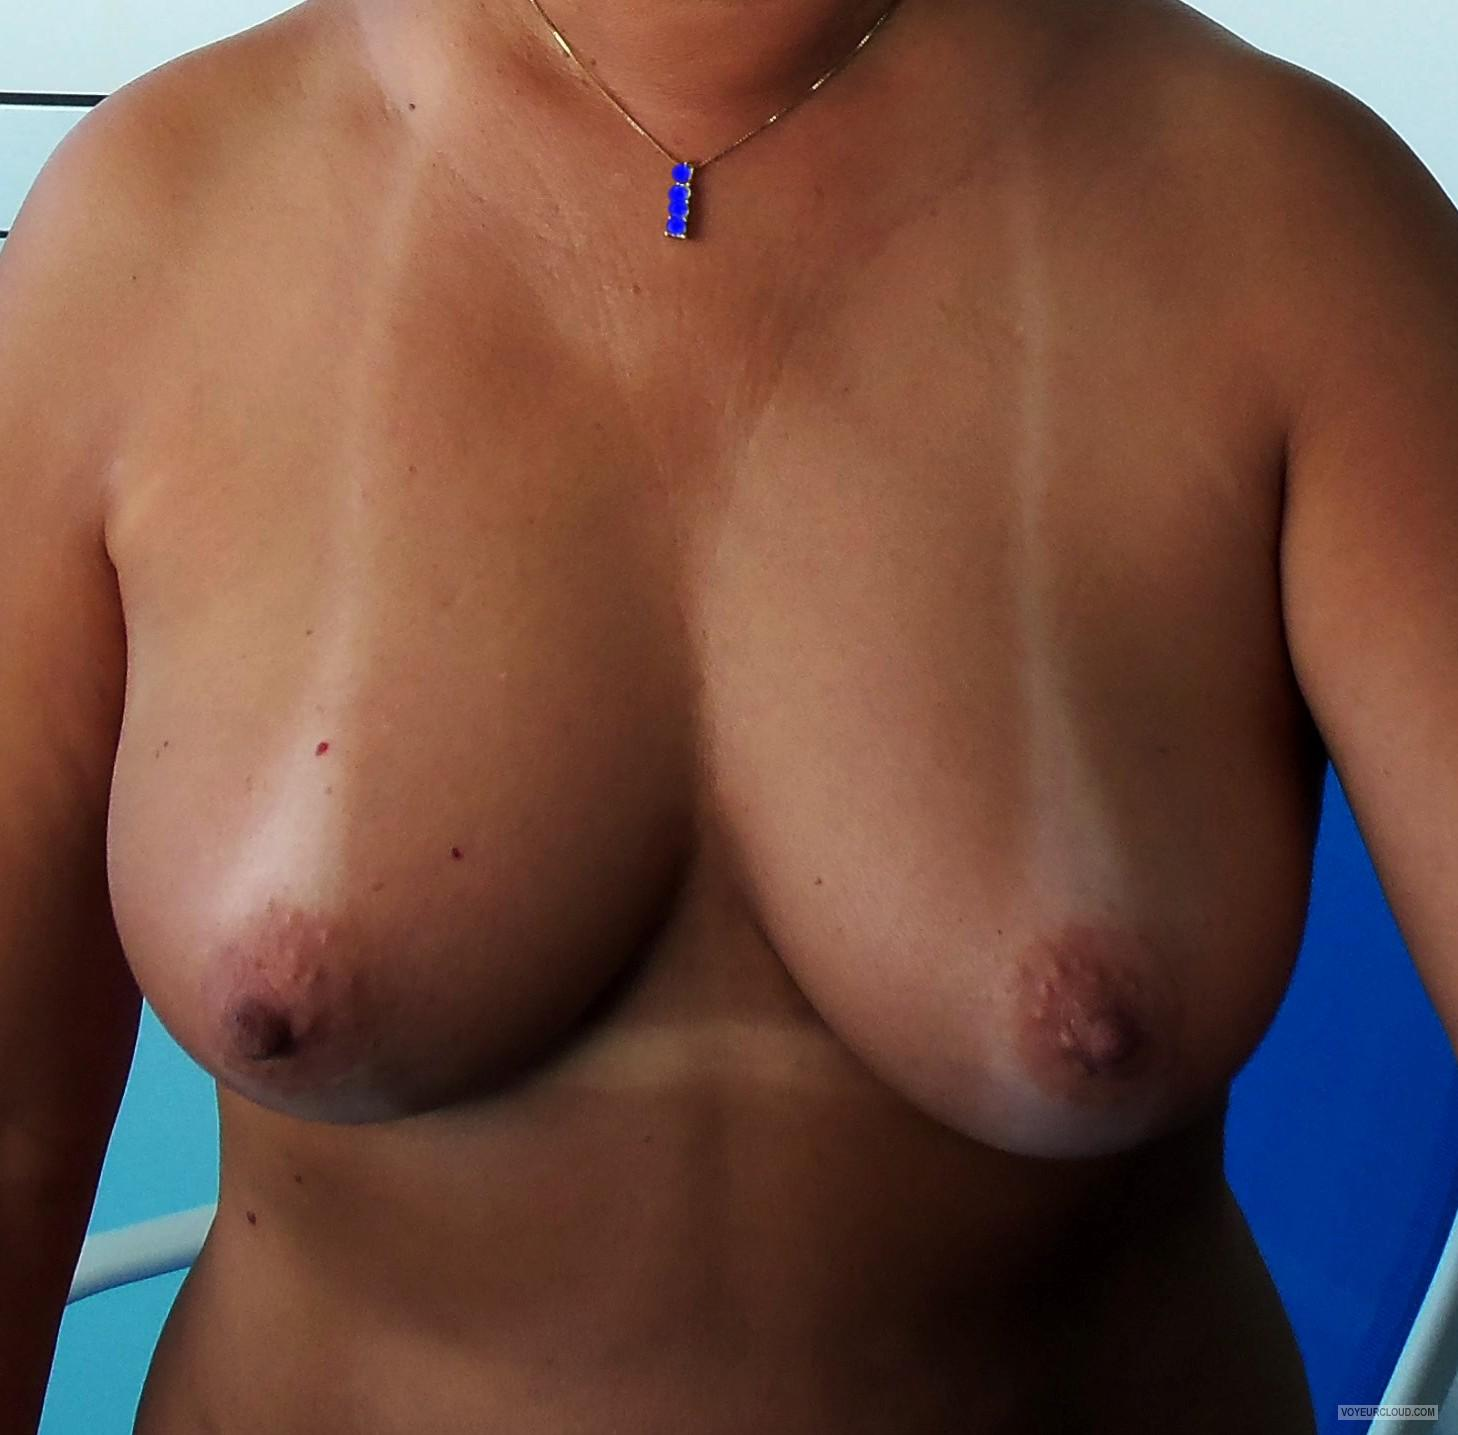 Tit Flash: My Medium Tits With Strong Tanlines - Me from United States